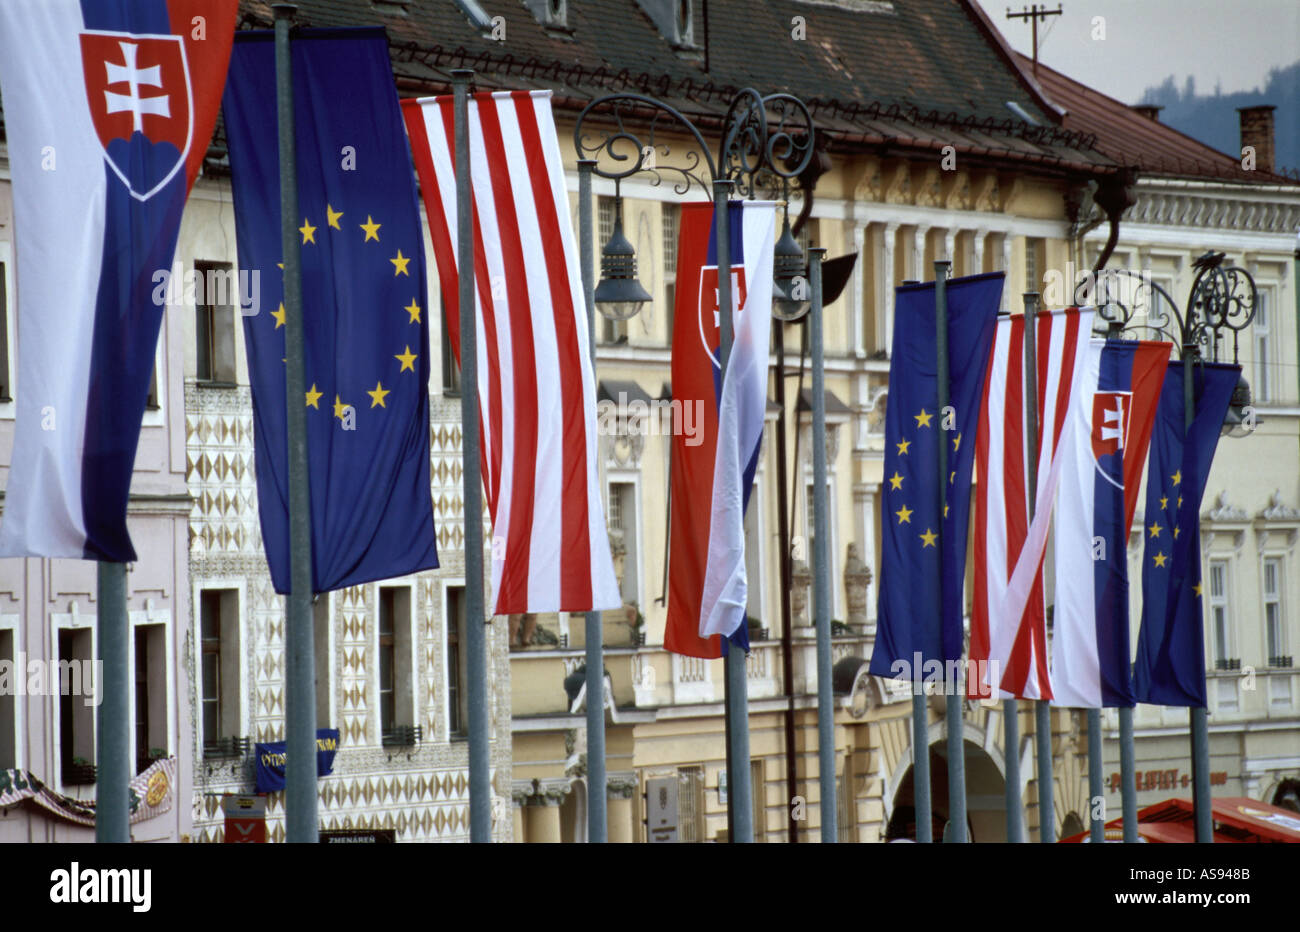 European Union Flags at Banska Bystrica town square, Slovakia - Stock Image